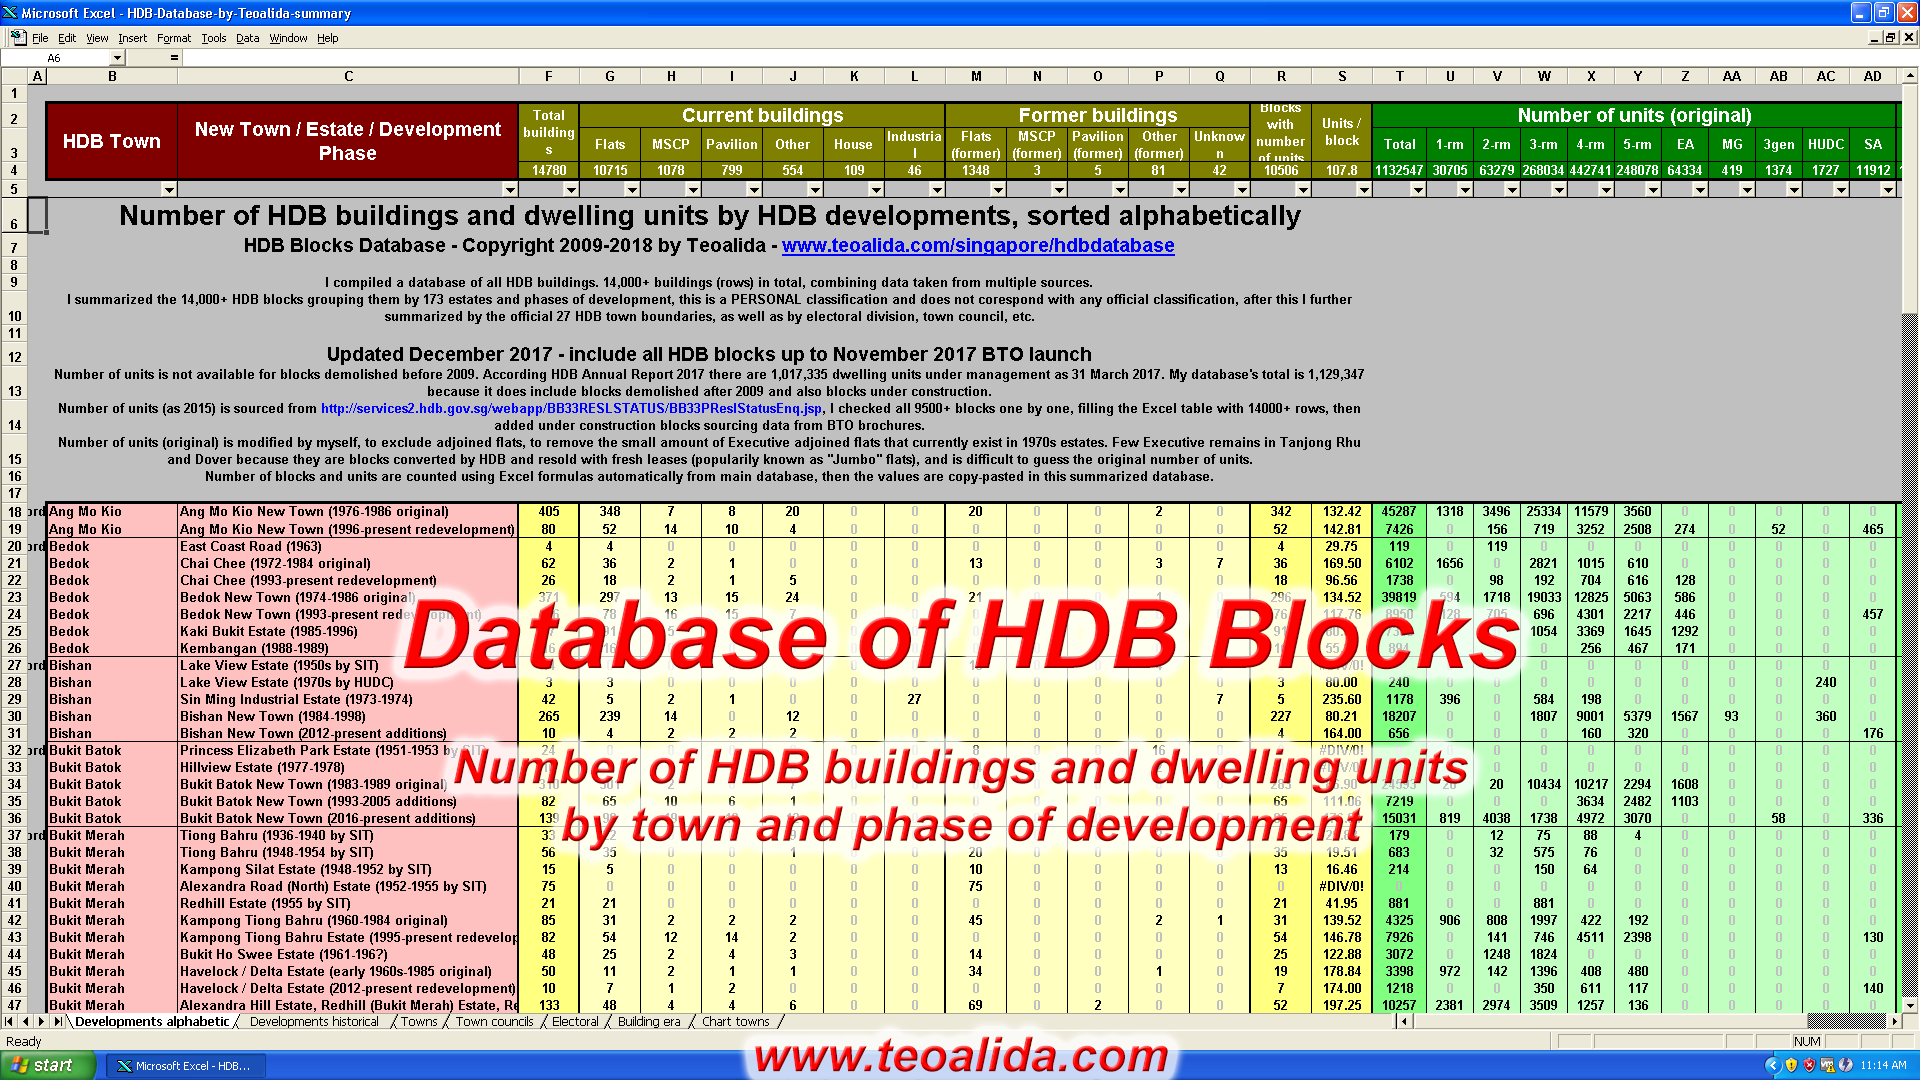 HDB Database, directory of HDB blocks and number of units